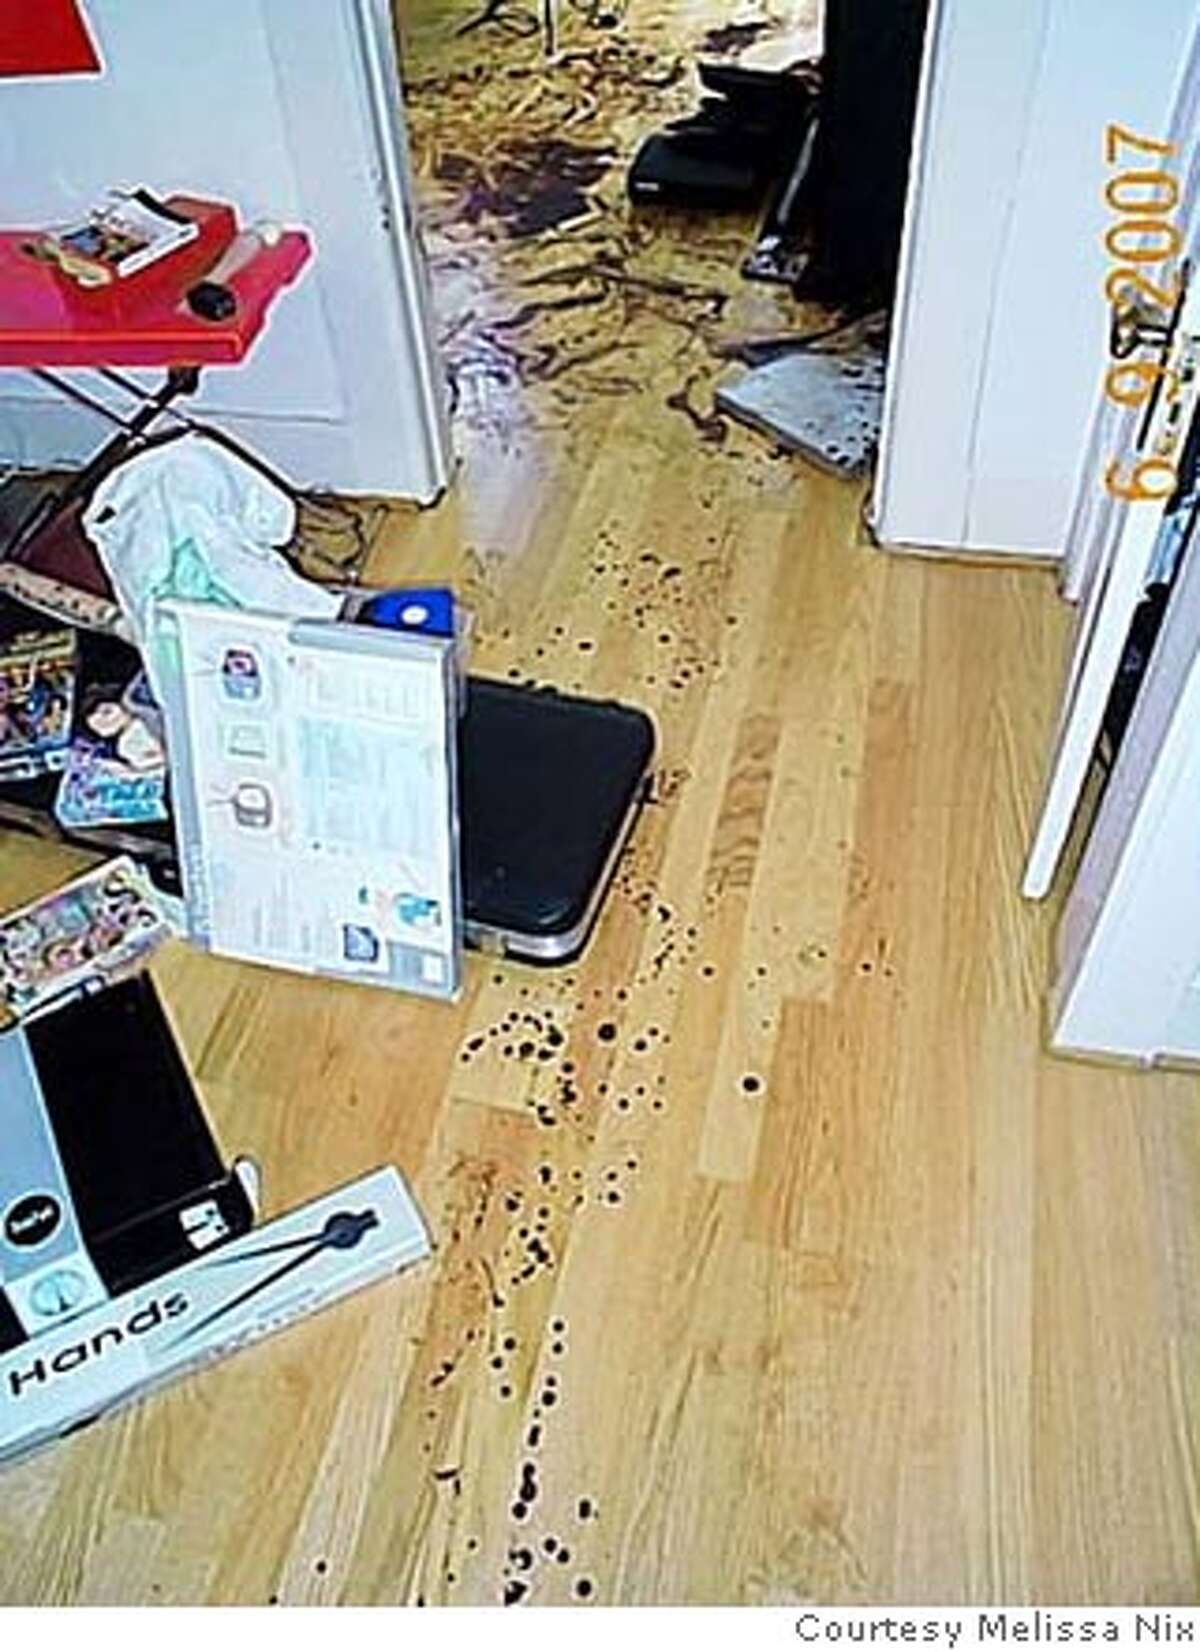 Photos of the apartment of Hugues De La Plaza, in San Francisco, Calif., after her was found dead from knife wounds. SFPD say they think it was a suicide but family members and friends think it was a homicide. Photos courtesy Melissa Nix